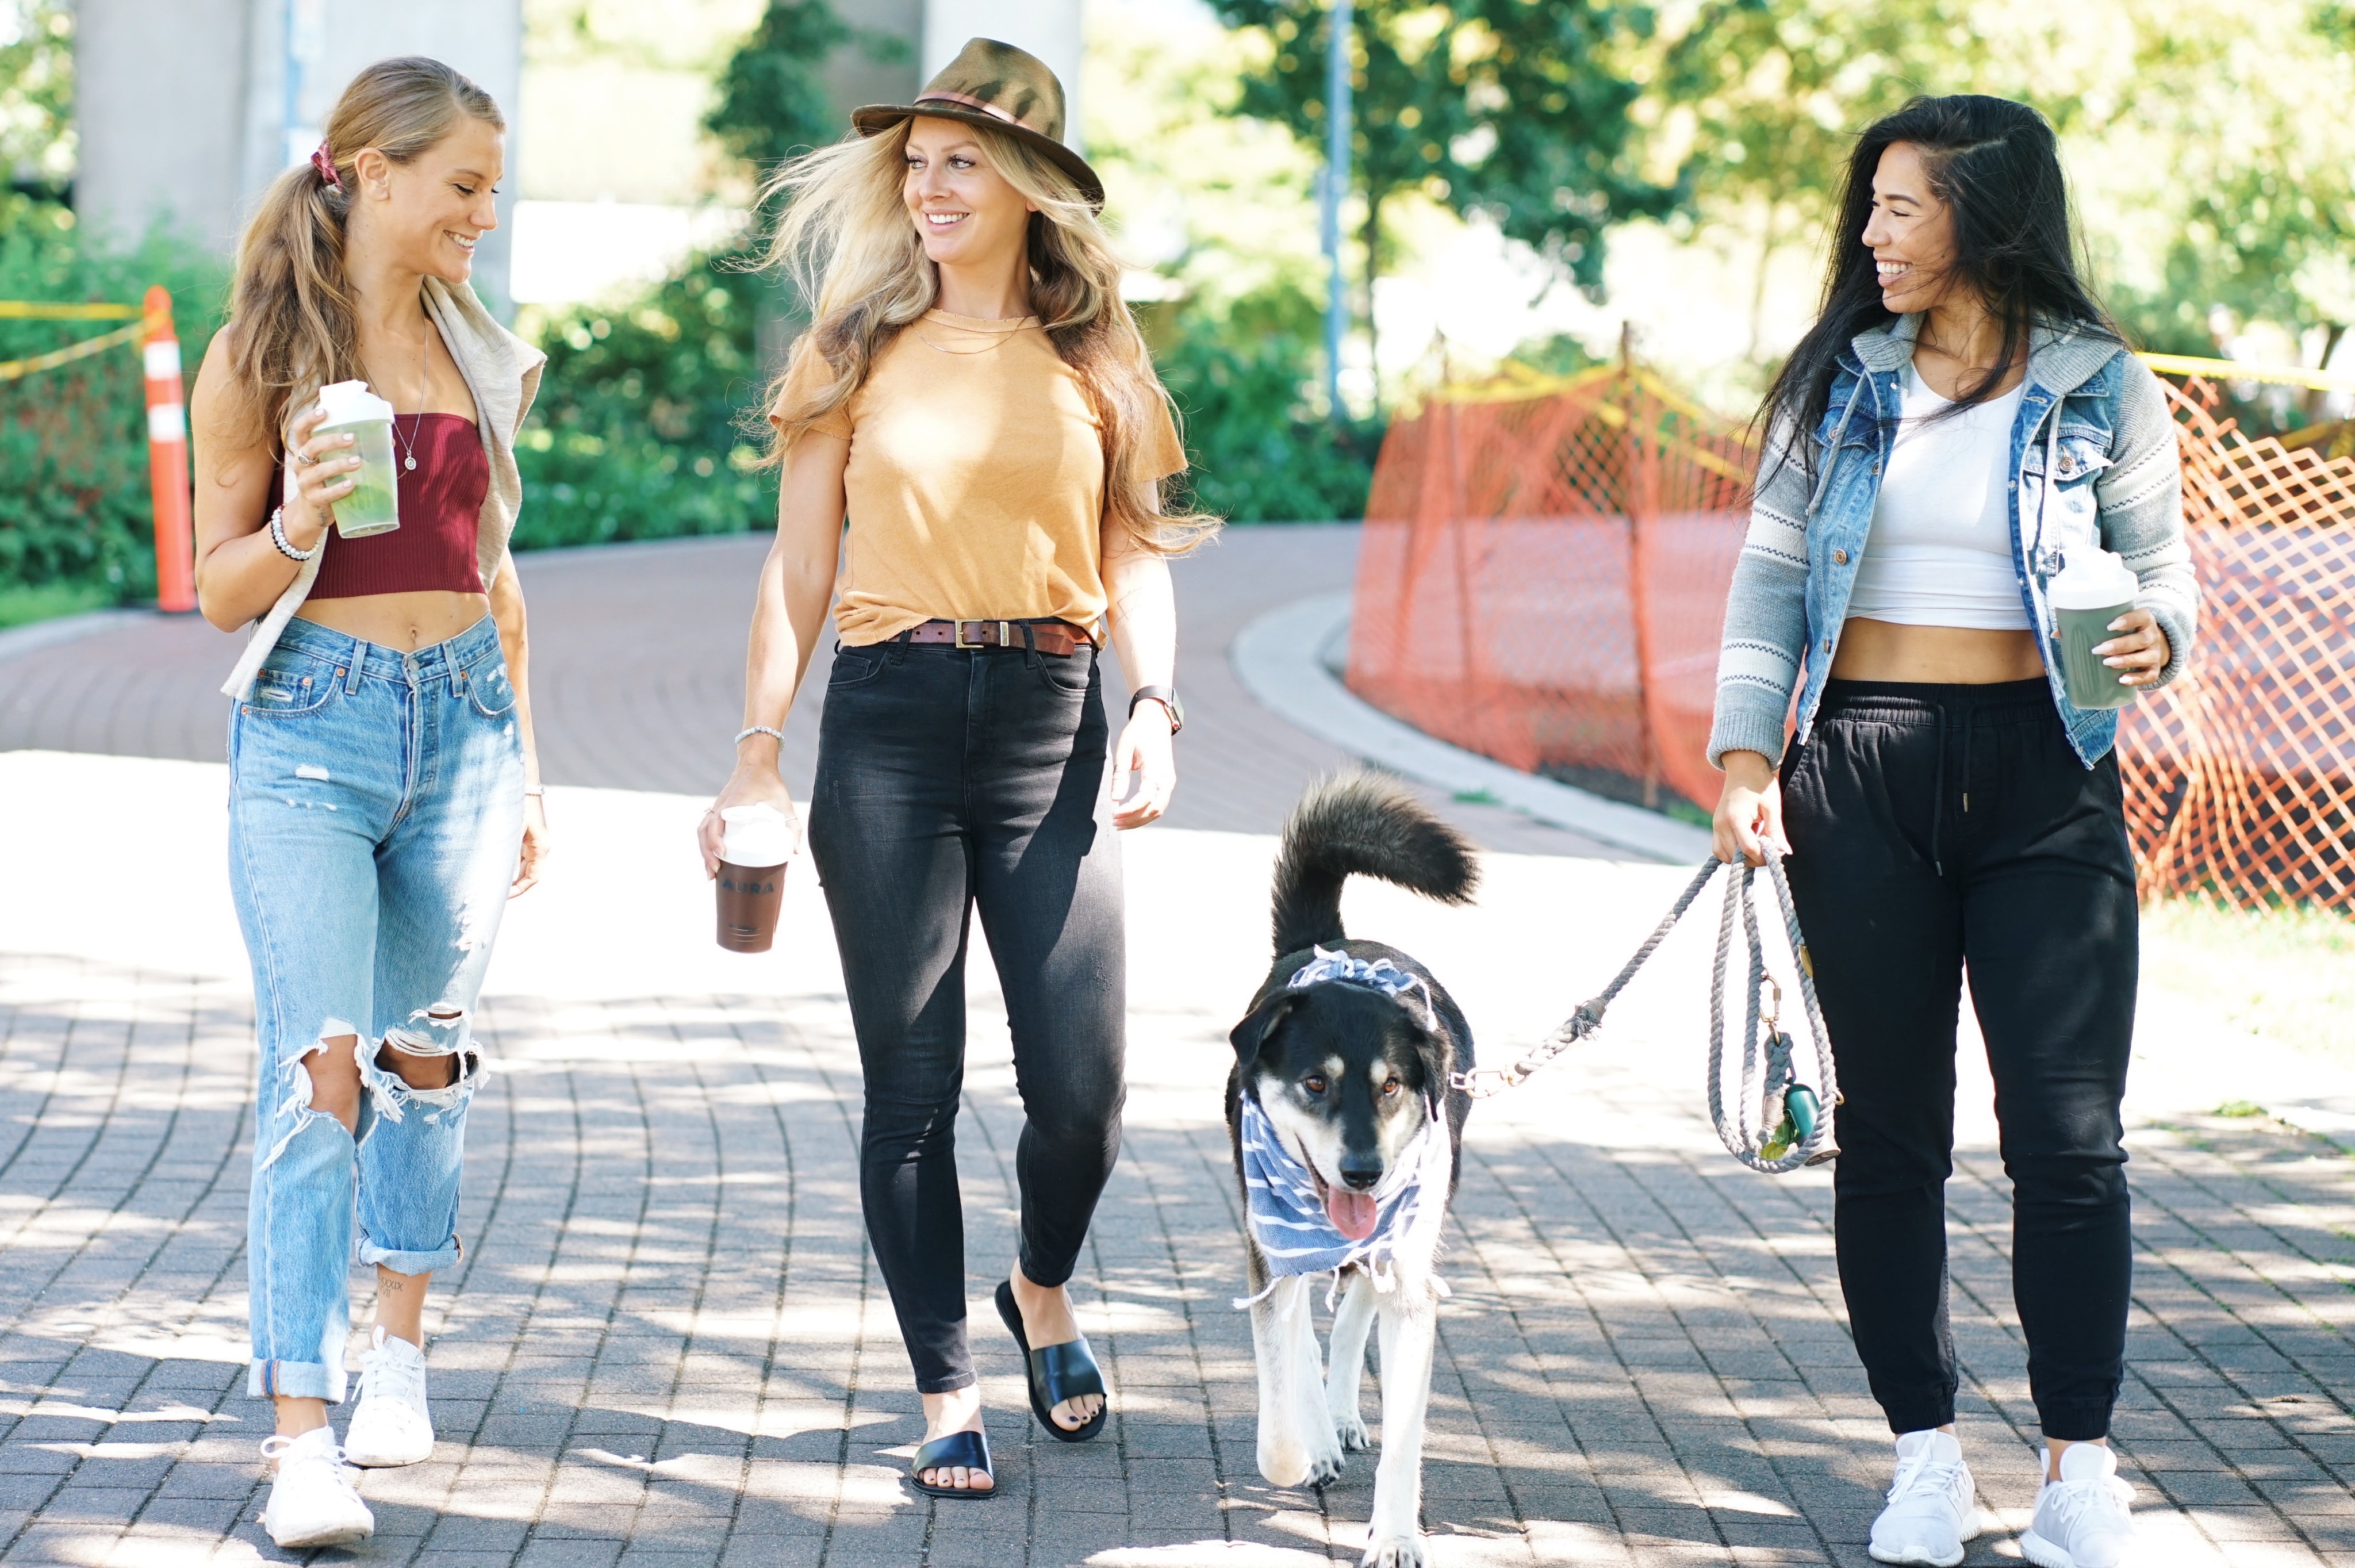 women walking their dog in a park. they are smiling.